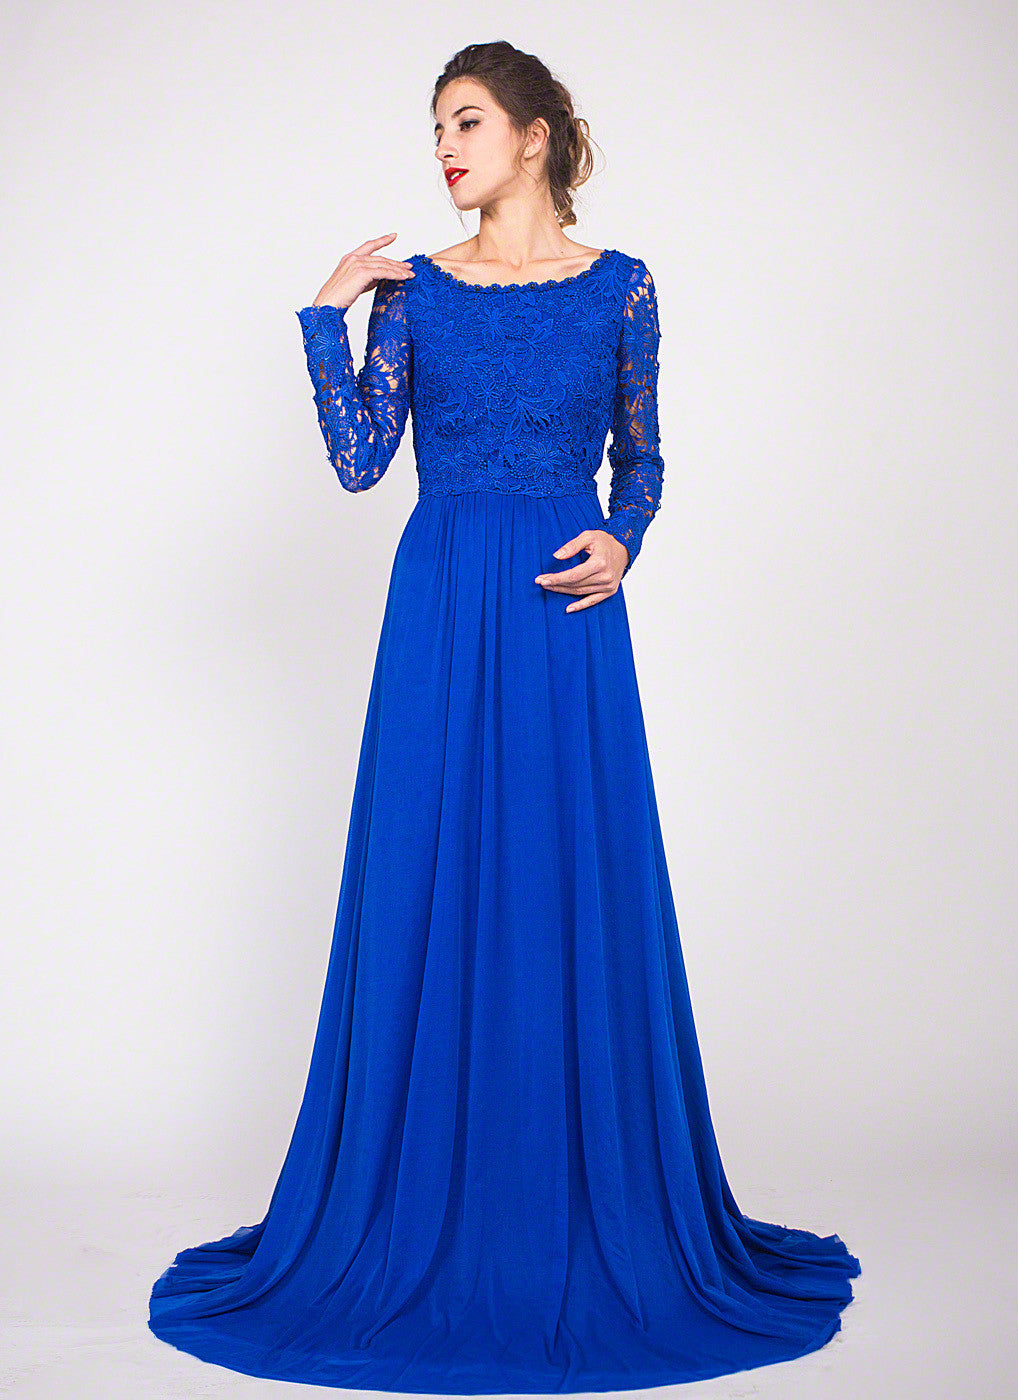 dbffaa506a71 Royal Blue Floor Length Lace Evening Gown with Rhinestone ...